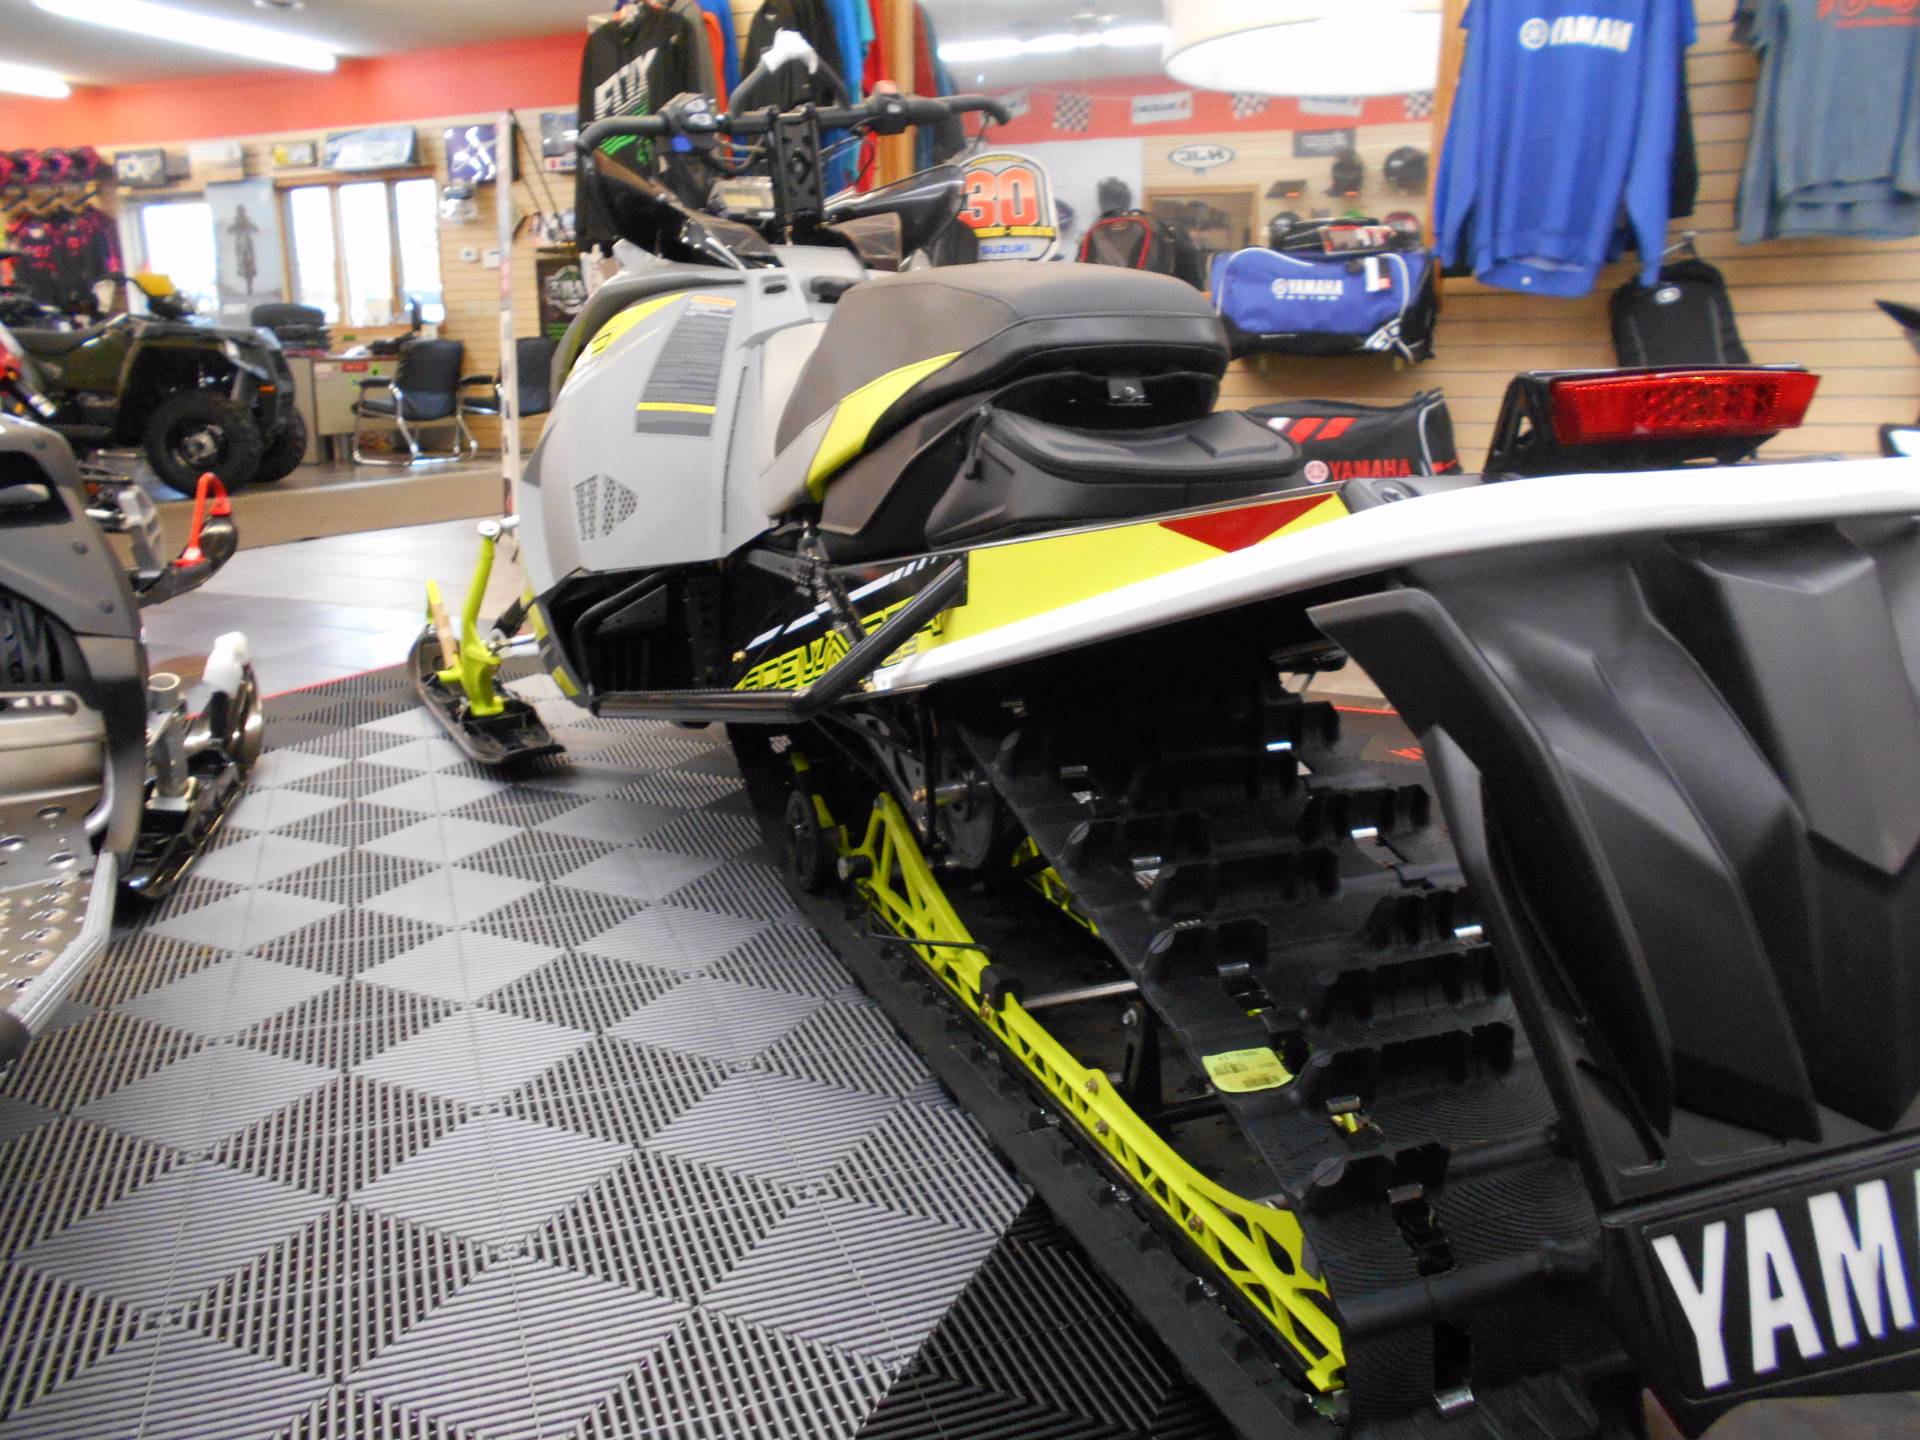 2018 Yamaha Sidewinder B-TX SE 153 1.75 in Belvidere, Illinois - Photo 4